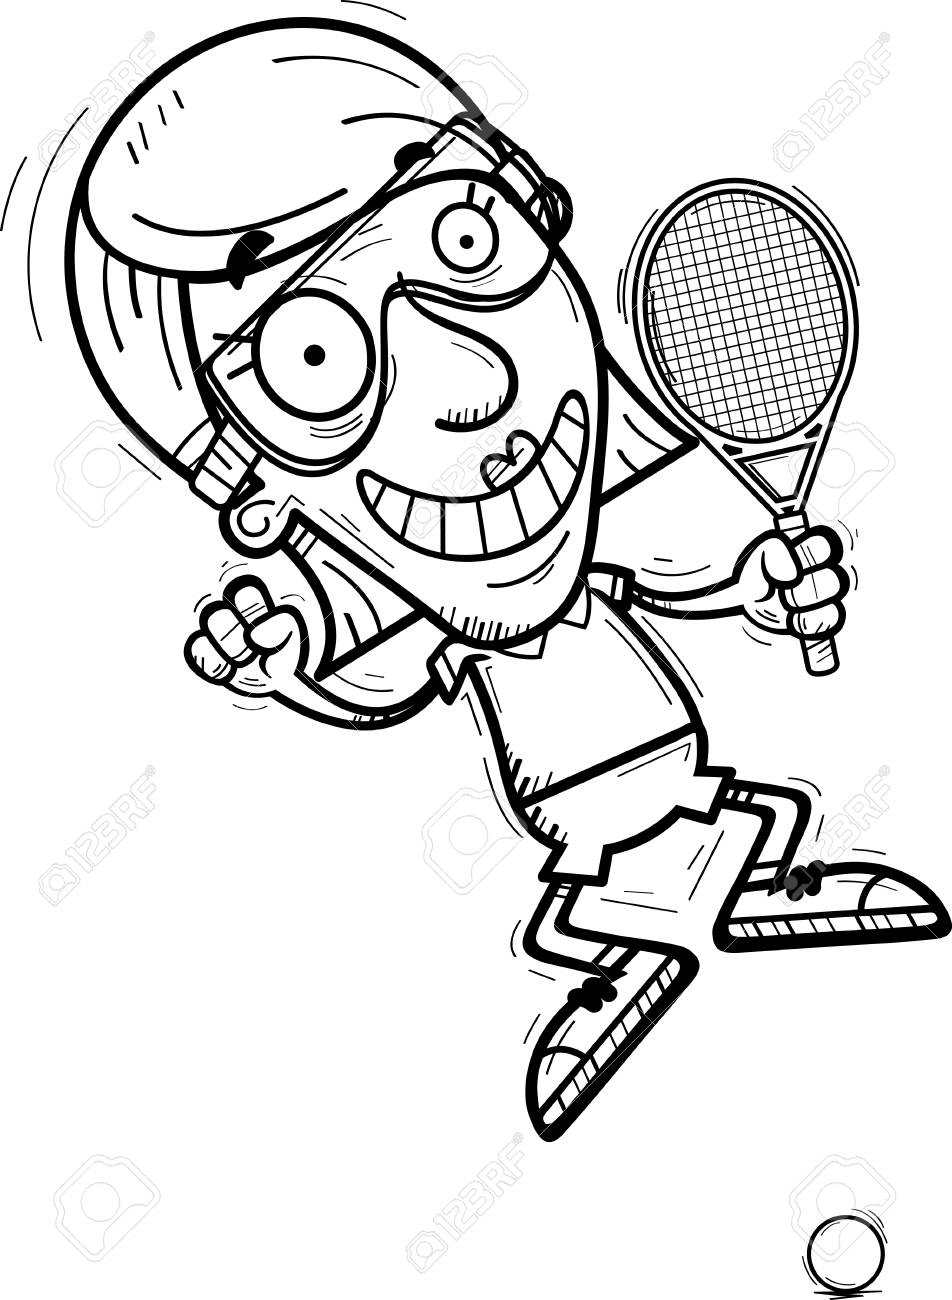 hight resolution of a cartoon illustration of a senior citizen woman racquetball player jumping stock vector 102270756